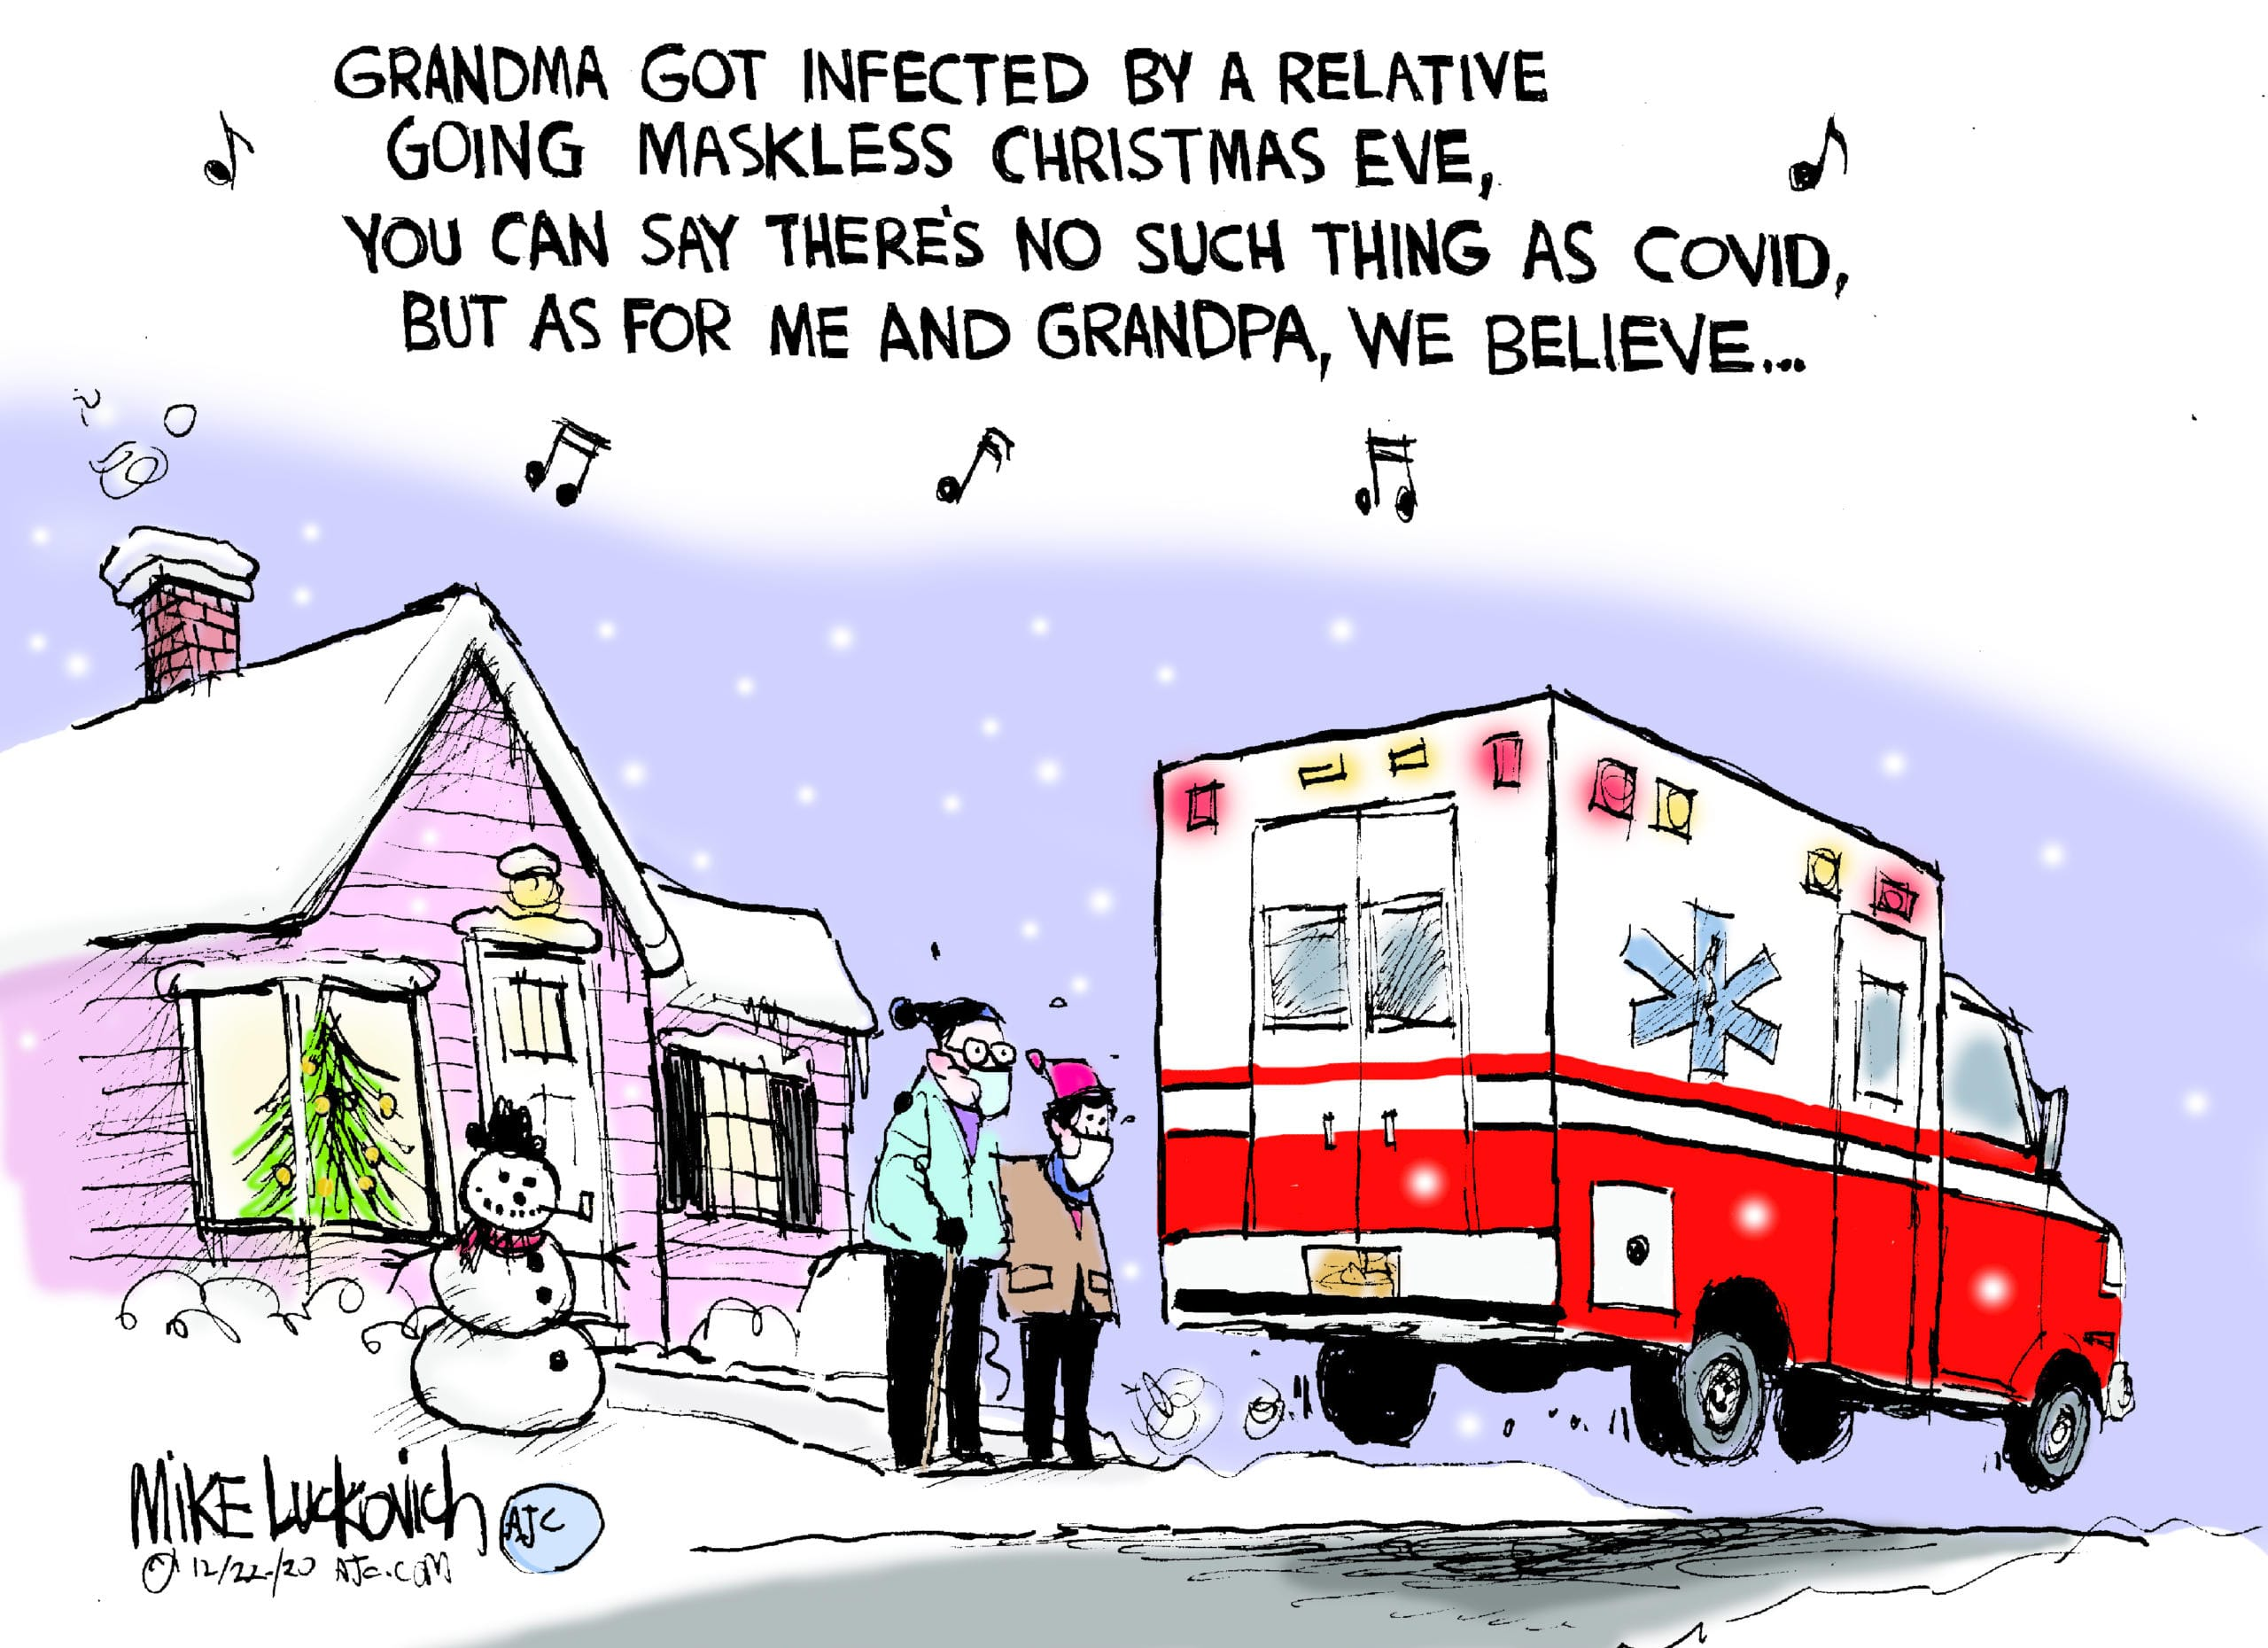 Dec. 26: Grandma Got Infected